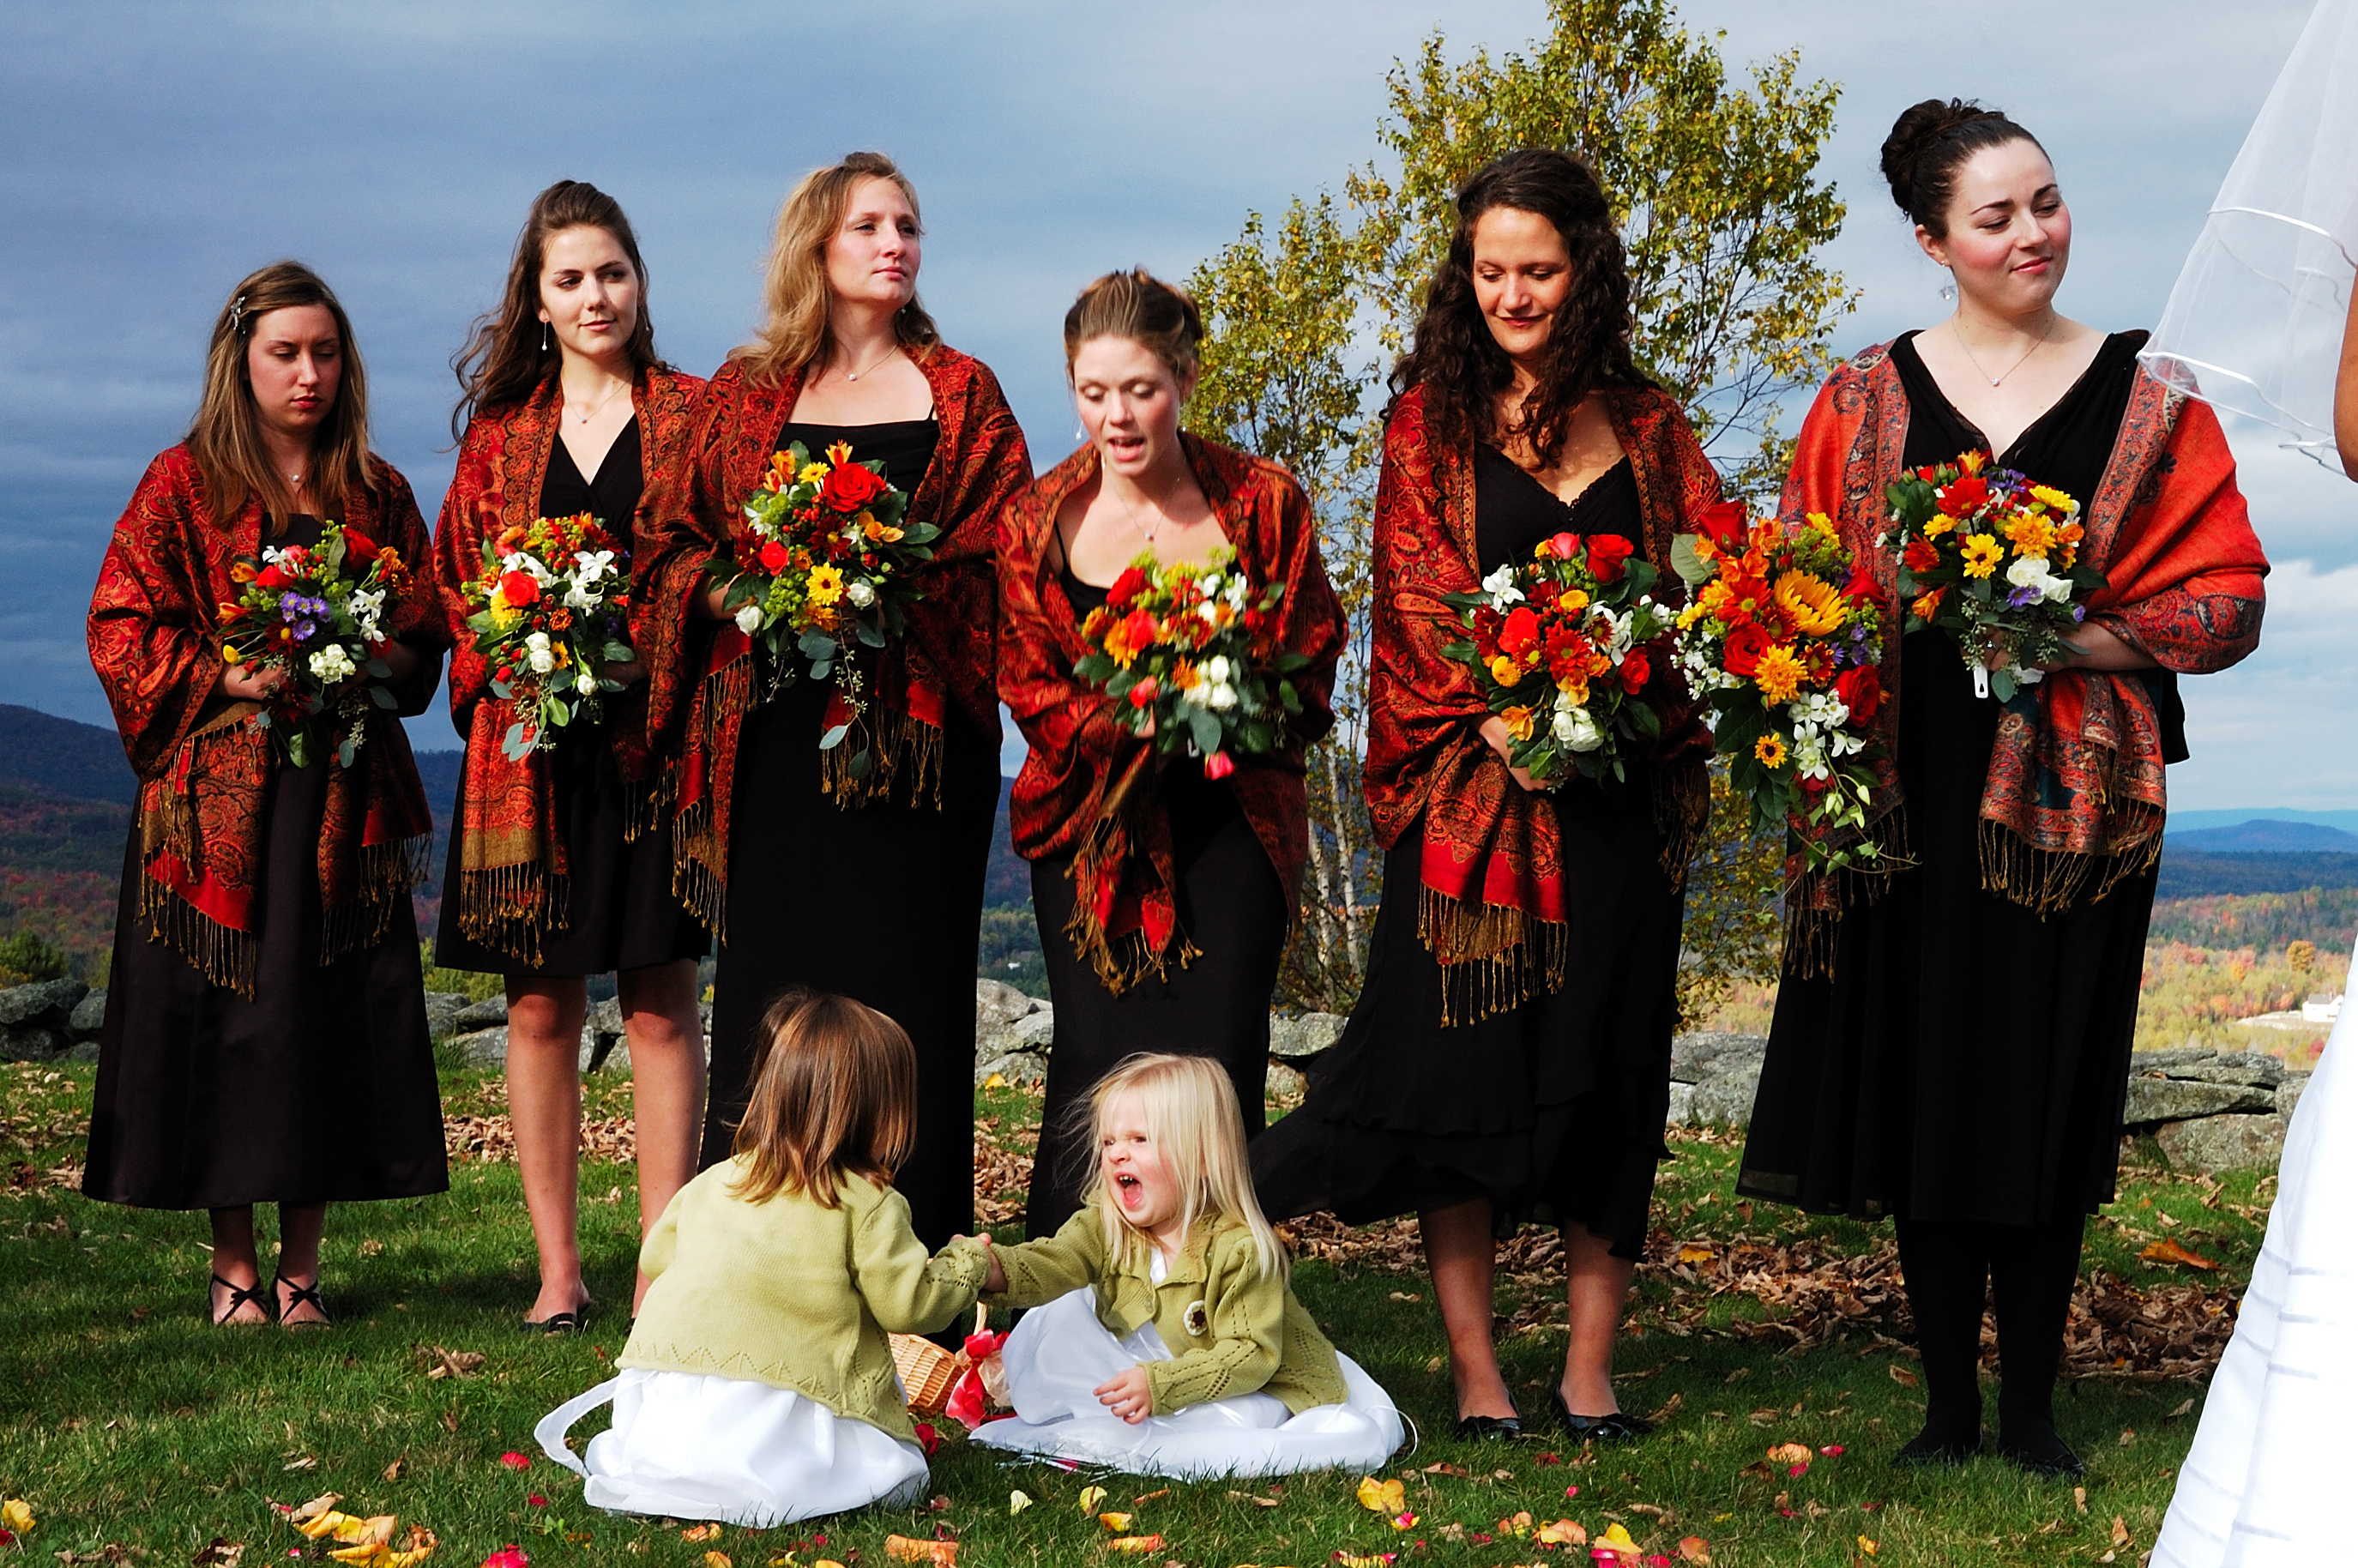 Ceremony, Flowers & Decor, Bridesmaids, Bridesmaids Dresses, Wedding Dresses, Fashion, white, orange, red, green, black, dress, Ceremony Flowers, Bridesmaid Bouquets, Flowers, Flower, Girl, Flower Wedding Dresses